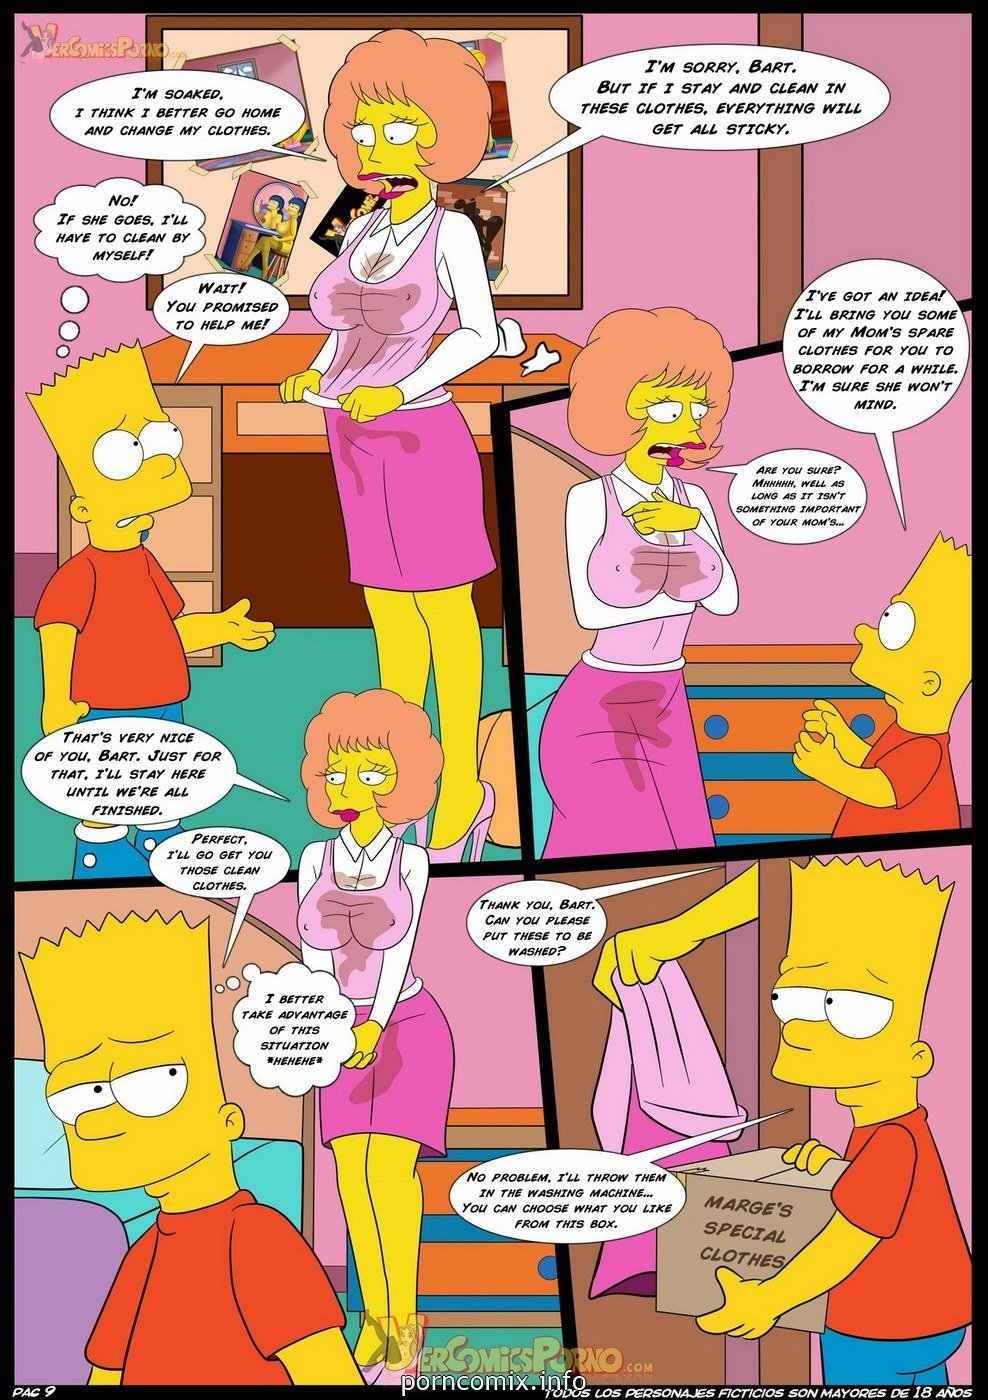 4Los Simpson Porno old habits 4 - the simpsons - kingcomix